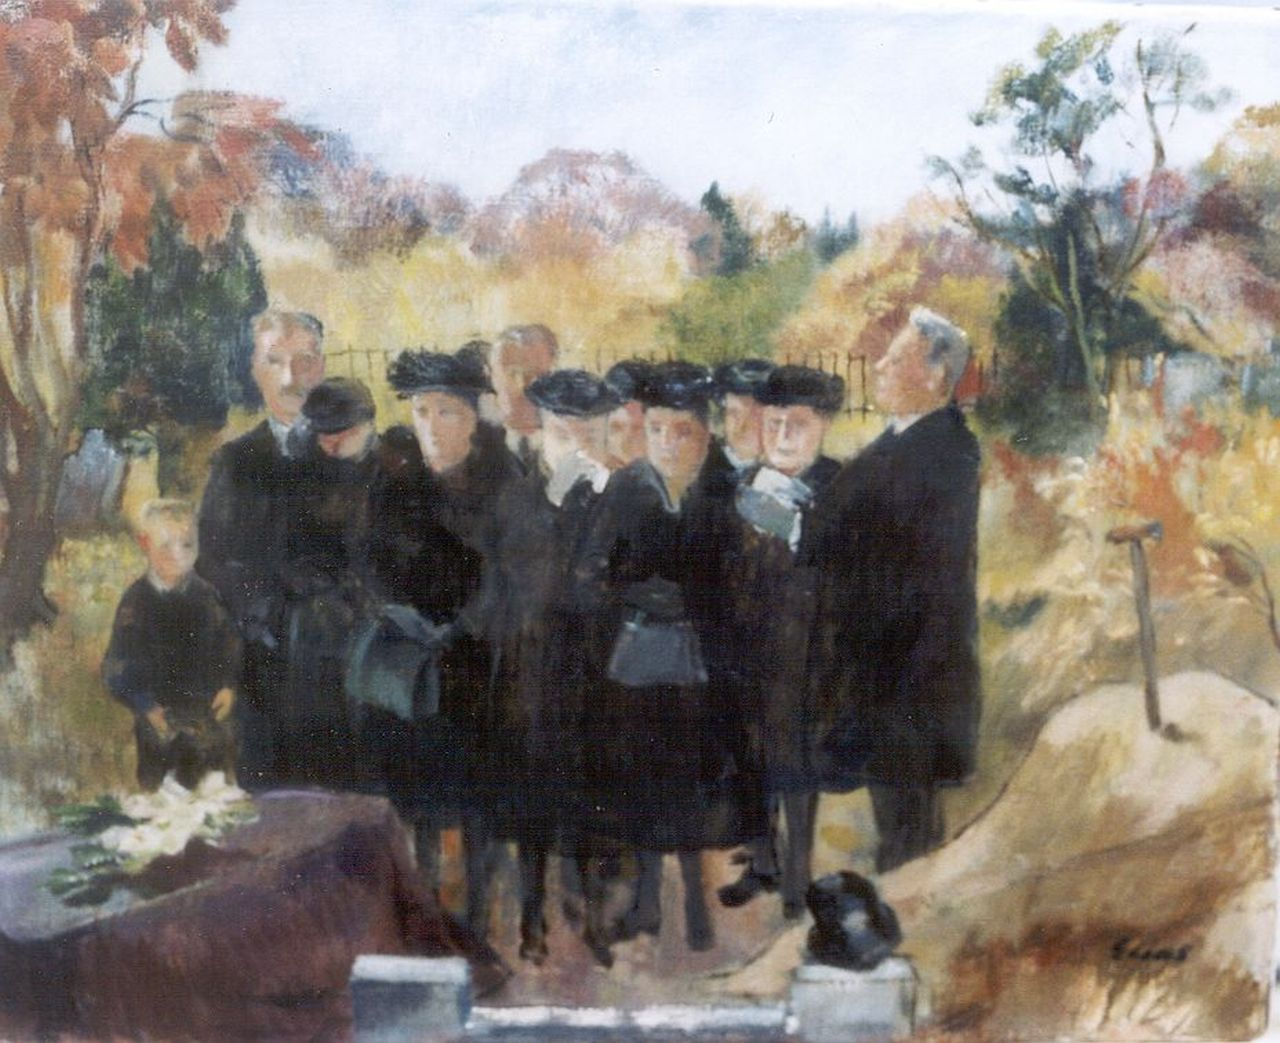 Josephine Bertha Elias | The funeral, oil on canvas, 40.3 x 50.3 cm, signed l.r.